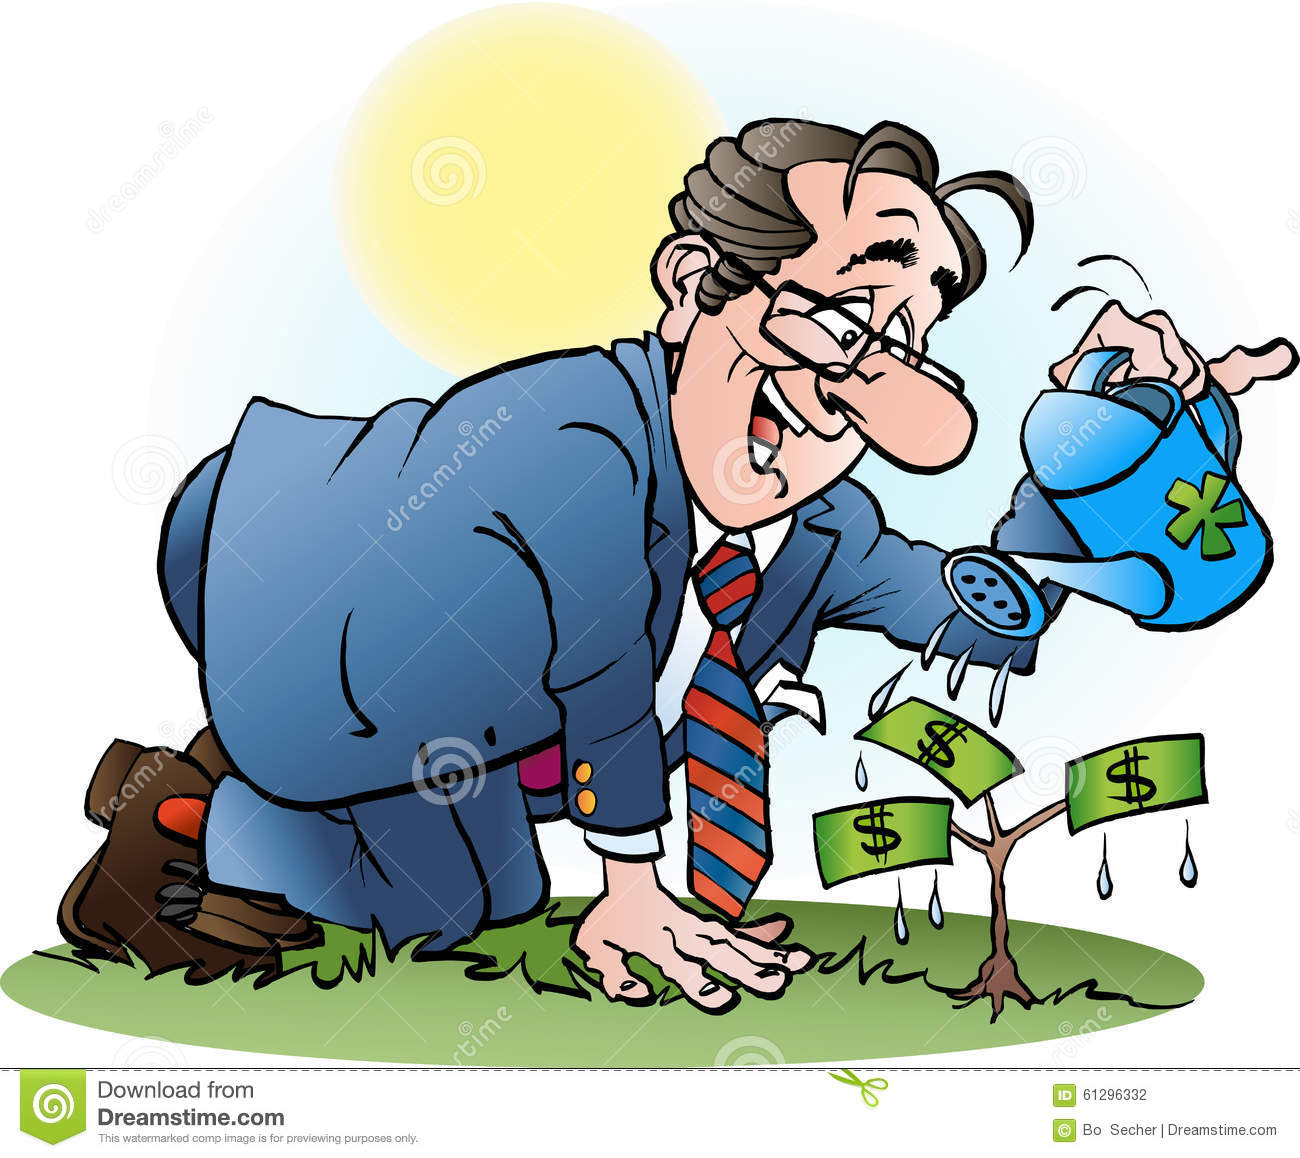 Businessman Watering Money Tree Vector Cartoon Illustration 61296332 Nj Left Behind Affordable and search from millions of royalty free images, photos and vectors. nj left behind